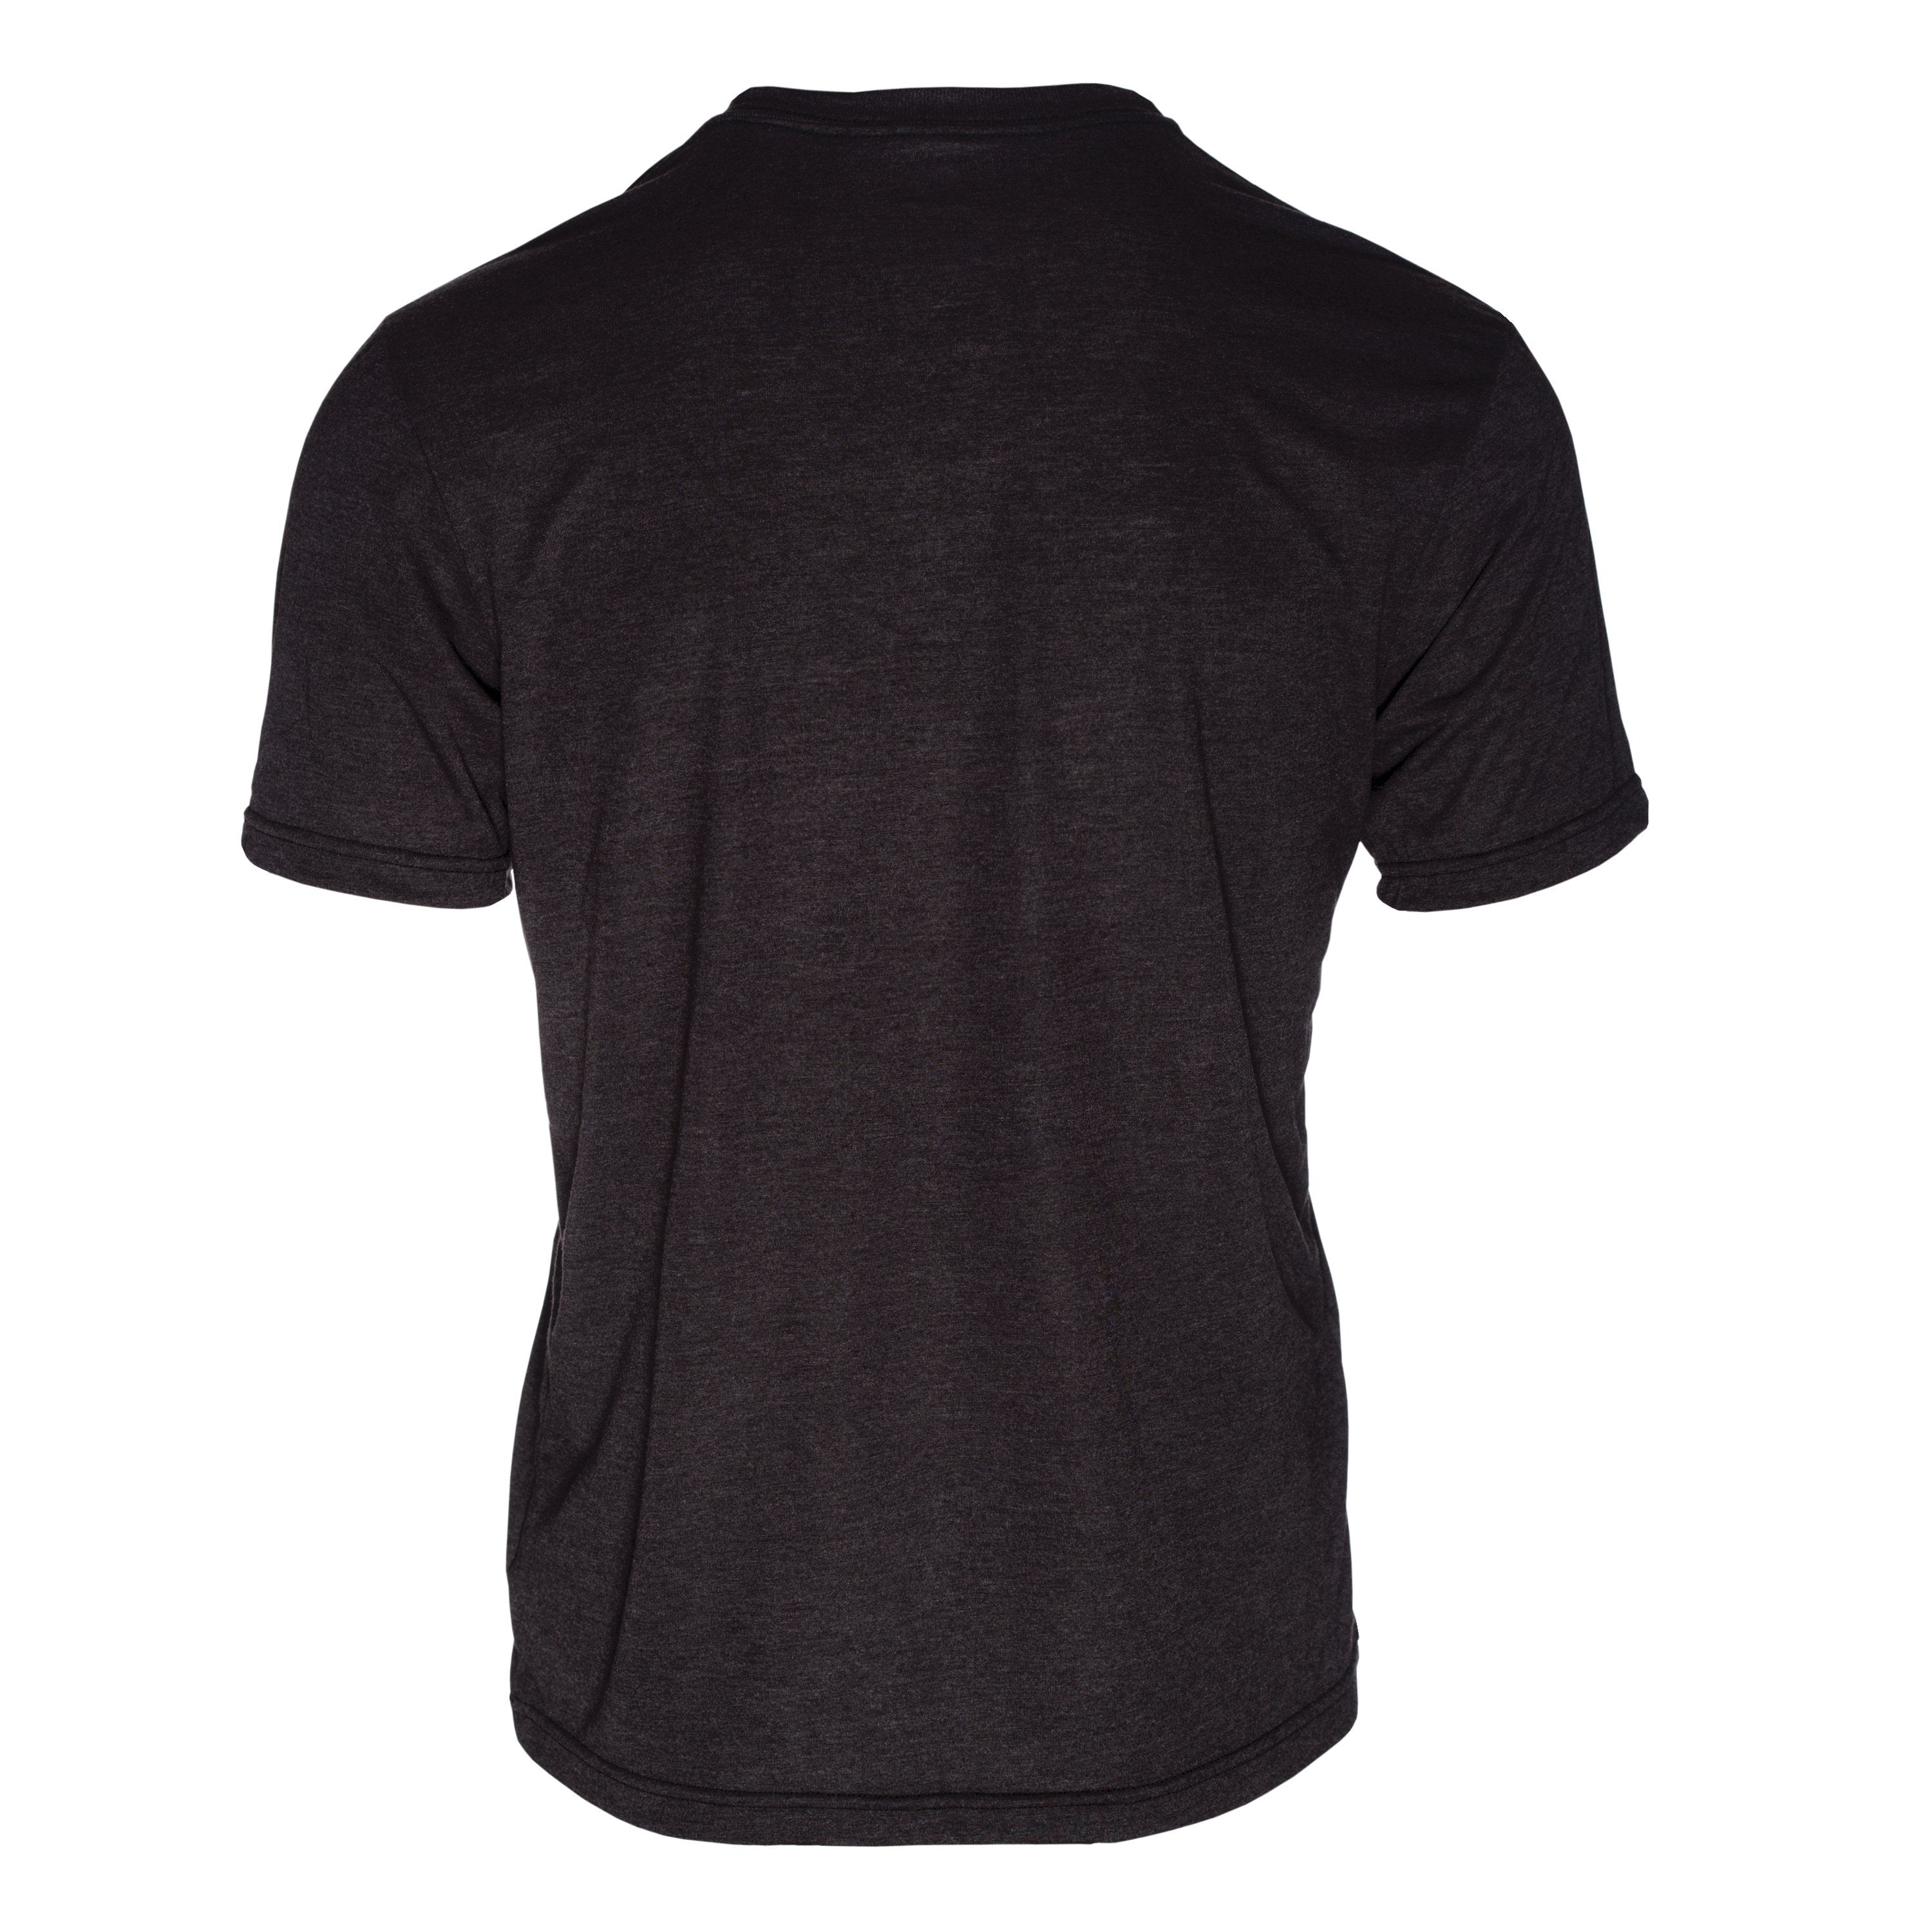 RM100CB Eco REPREVE® Recycled Triblend Crew T-Shirt - Charblack